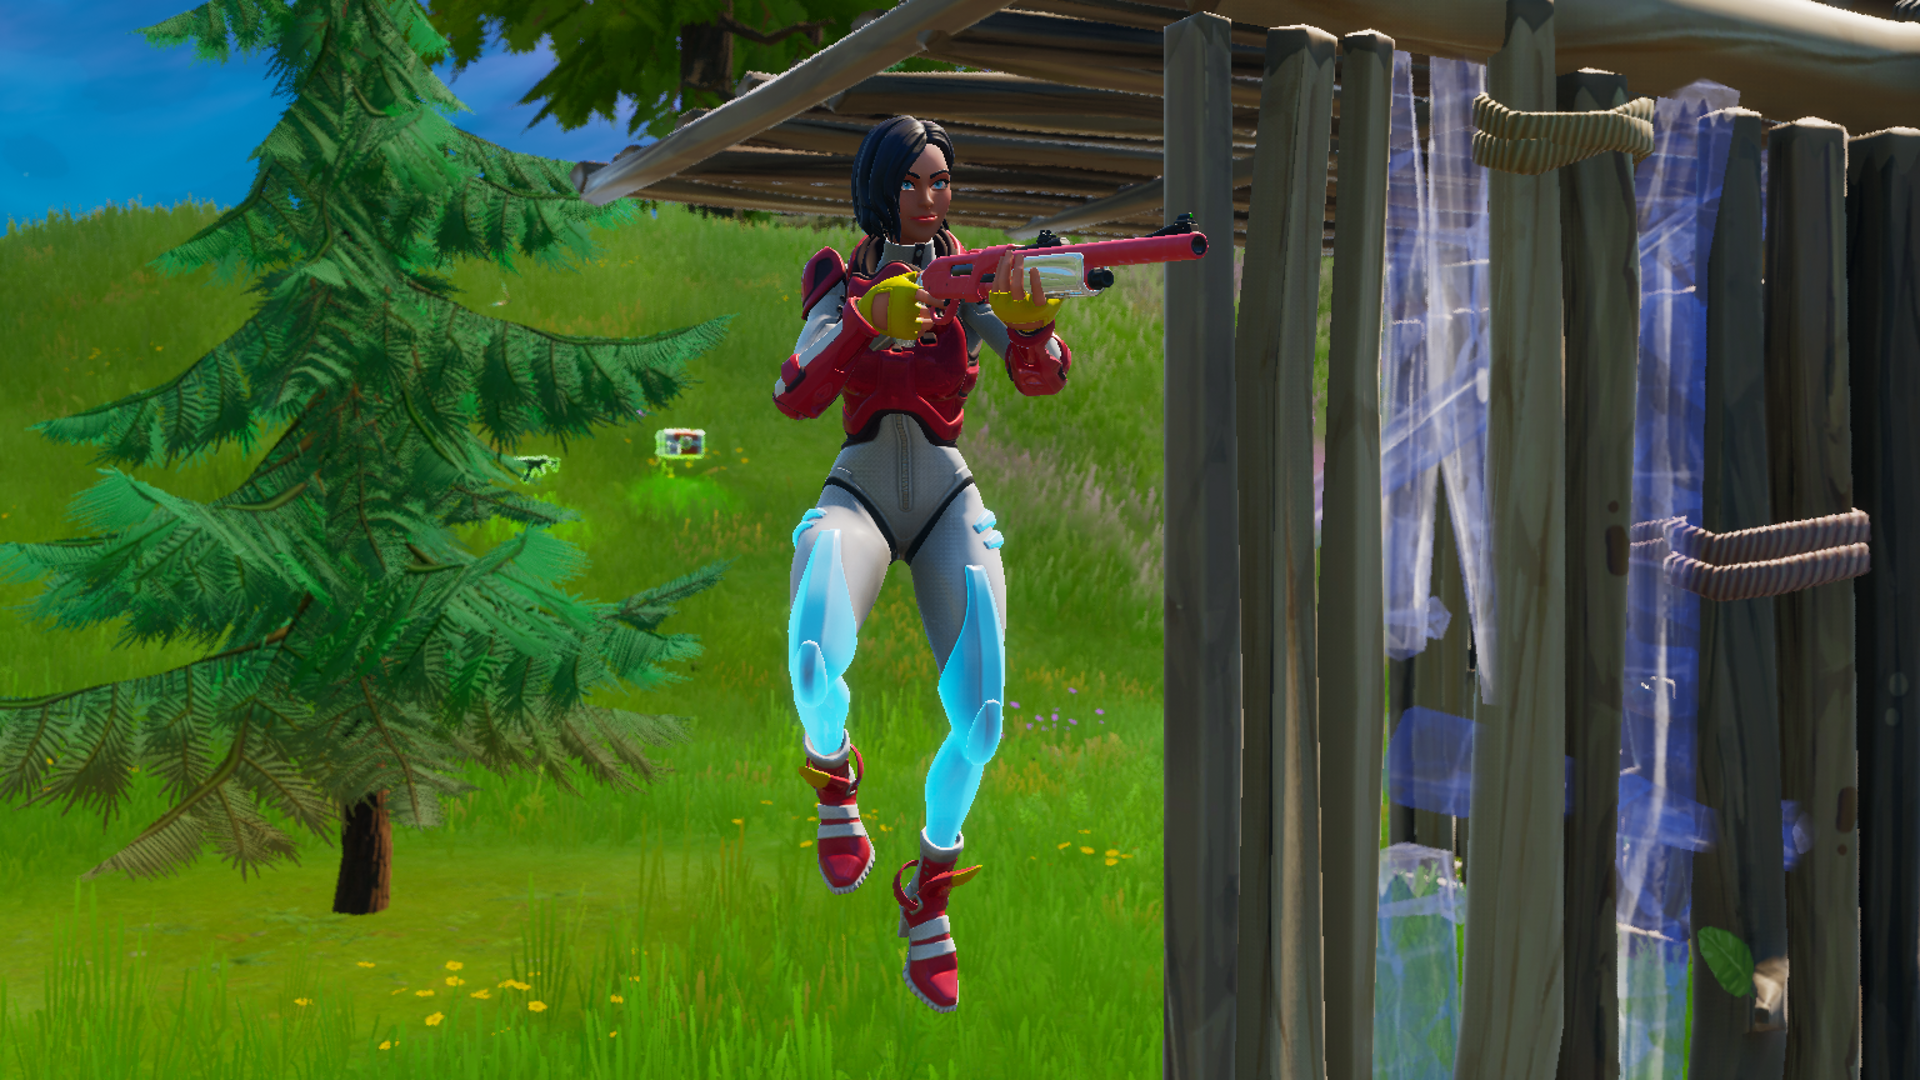 A Fortnite Chapter 2 player with a shotgun jumps in the air